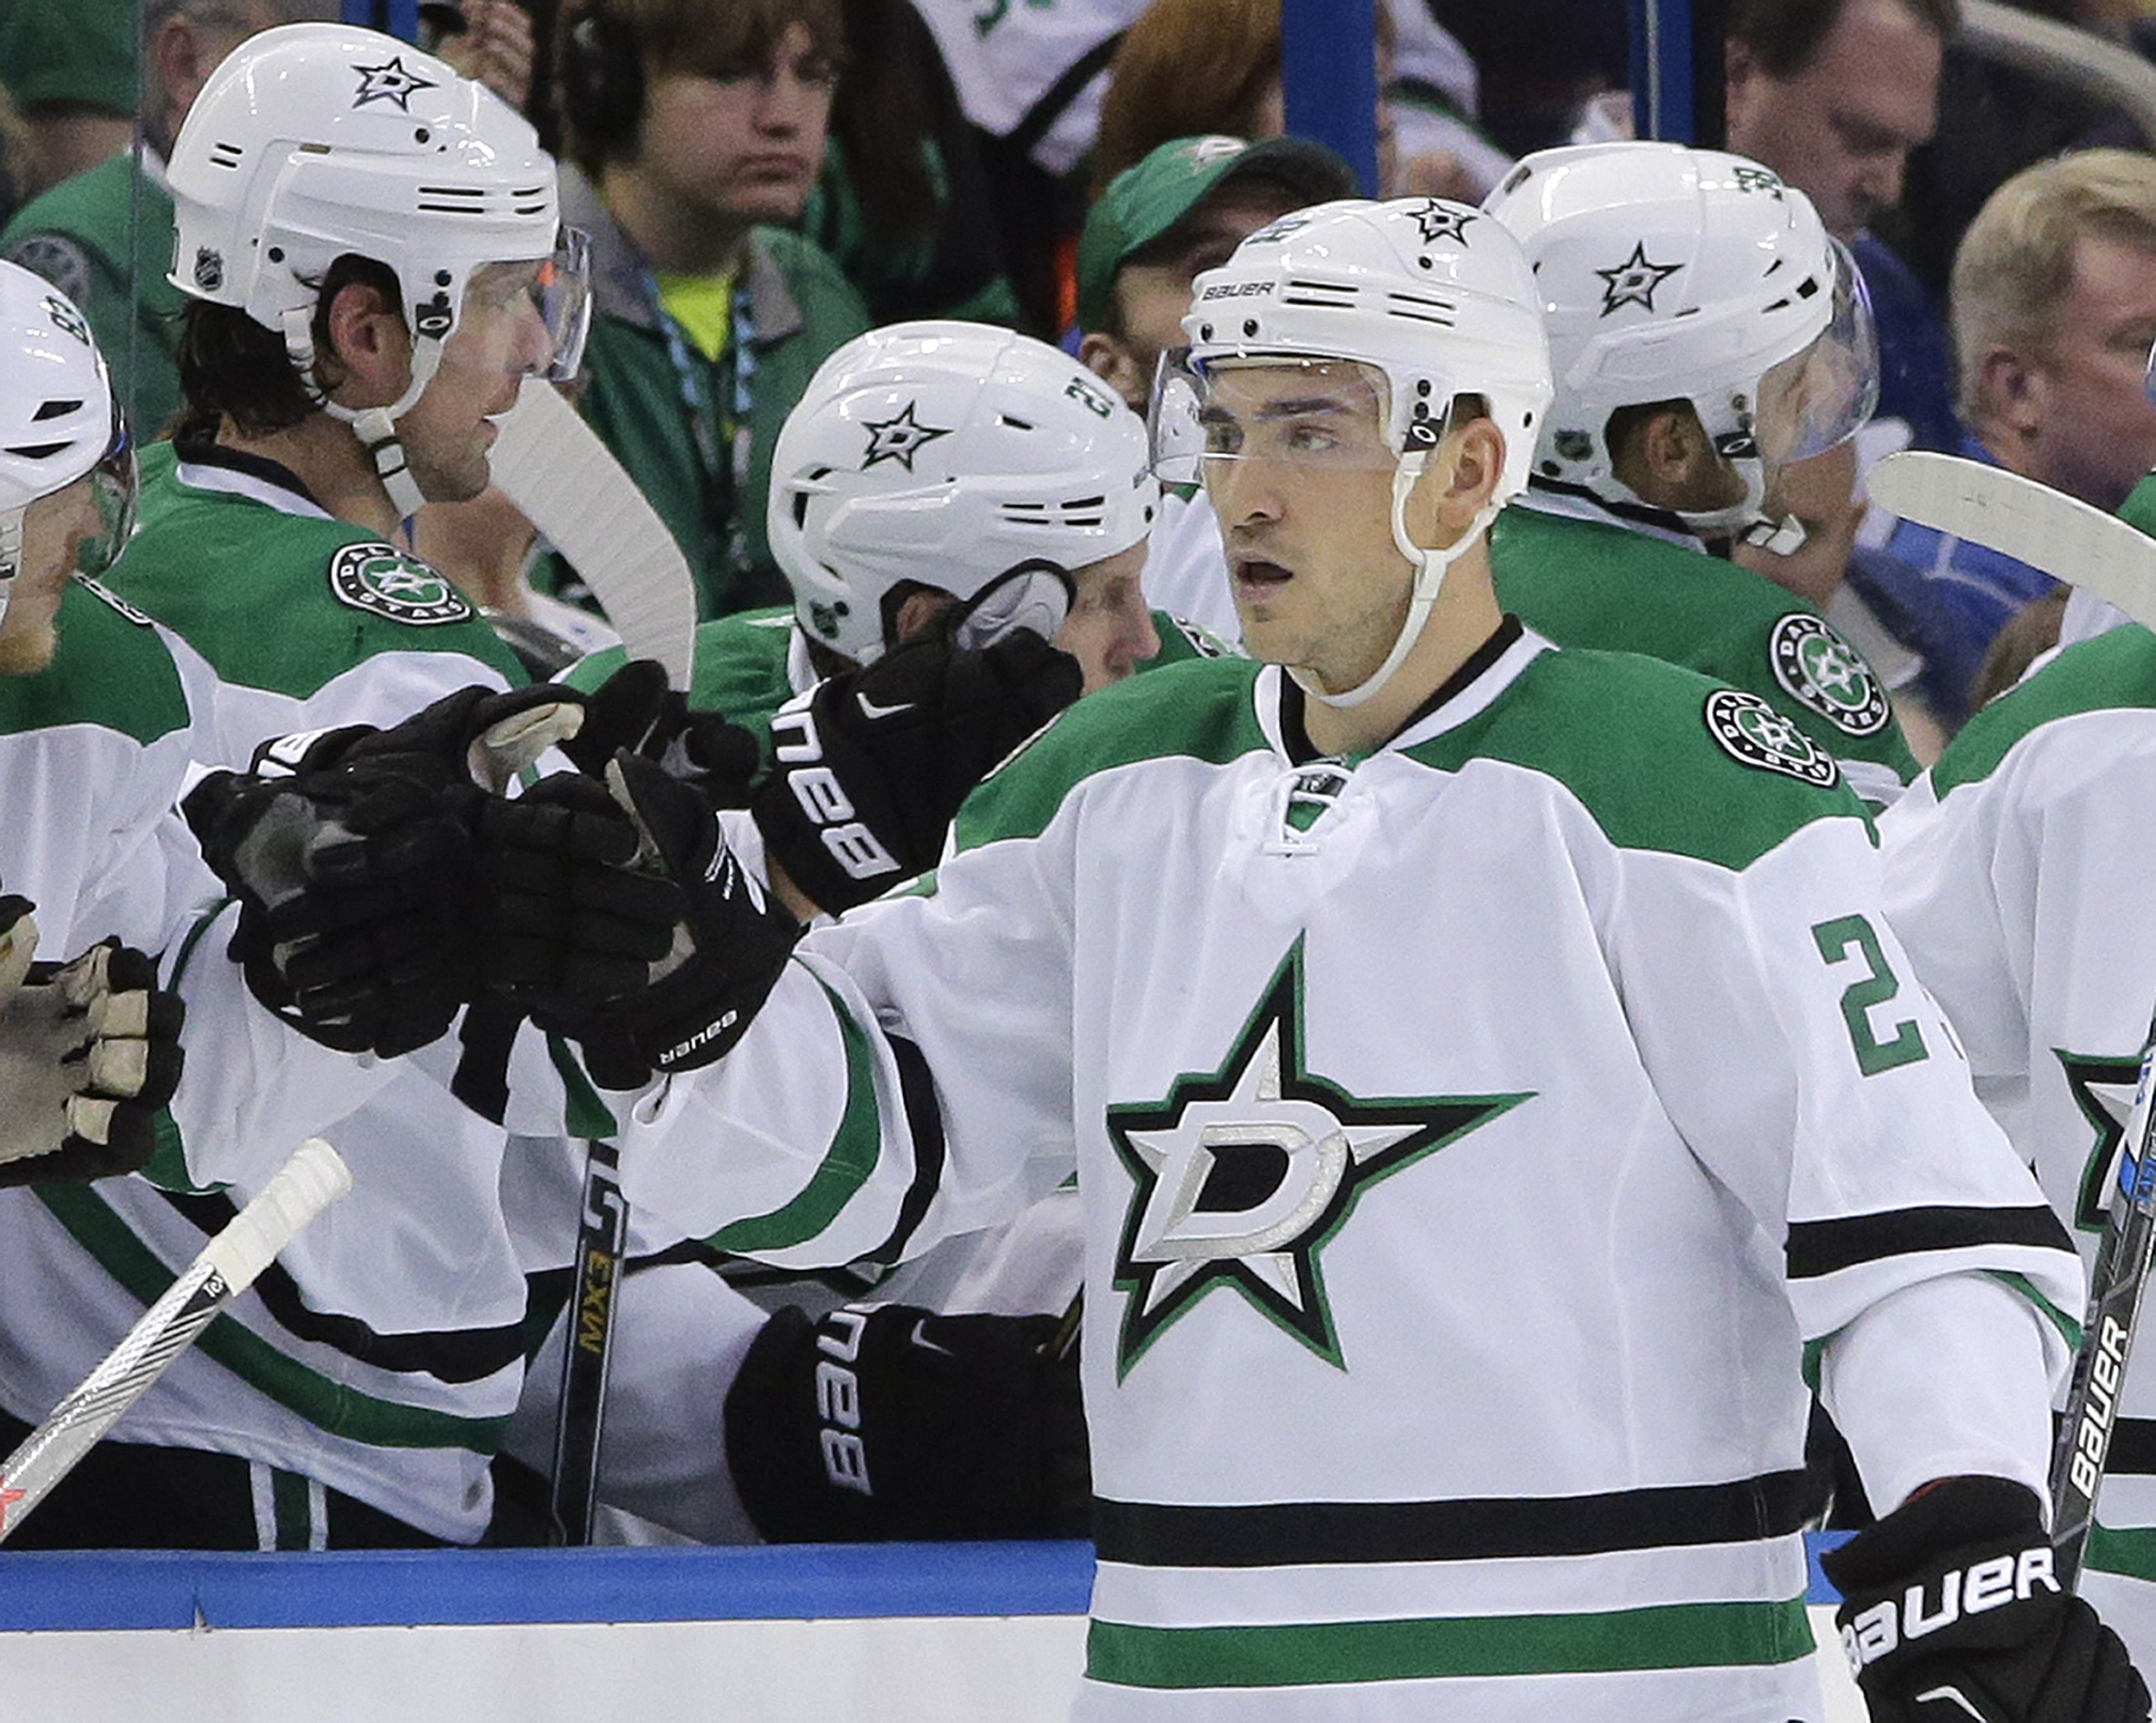 Dallas Stars center Cody Eakin (20) celebrates with the bench after scoring against the Tampa Bay Lightning during the second period of an NHL hockey game Thursday, Oct. 15, 2015, in Tampa, Fla. (AP Photo/Chris O'Meara)